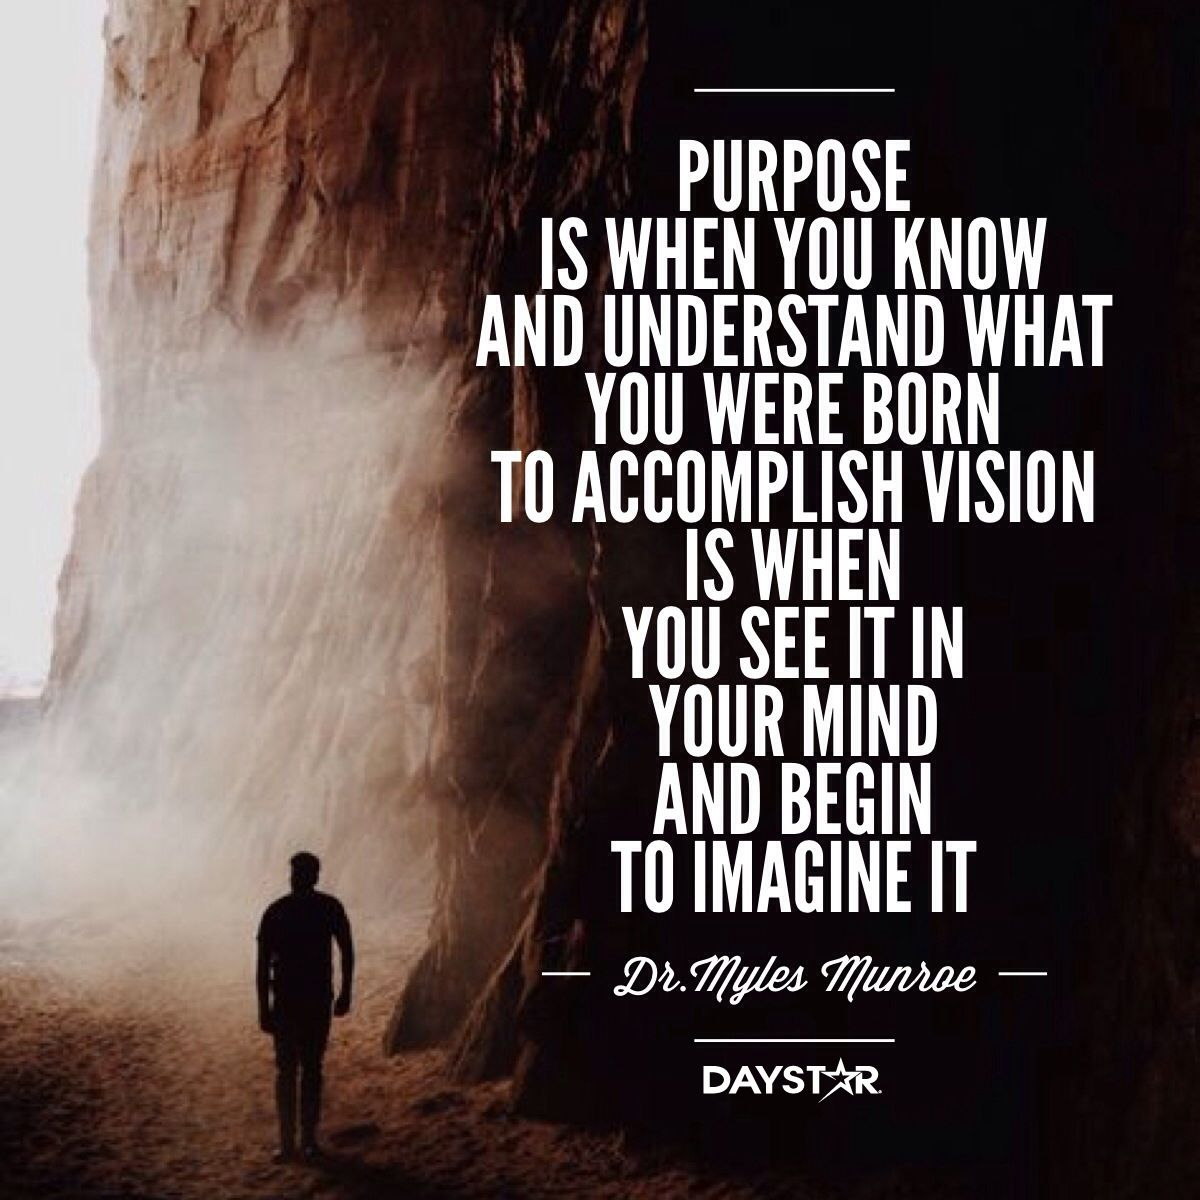 """Purpose is when you know and understand what you were"